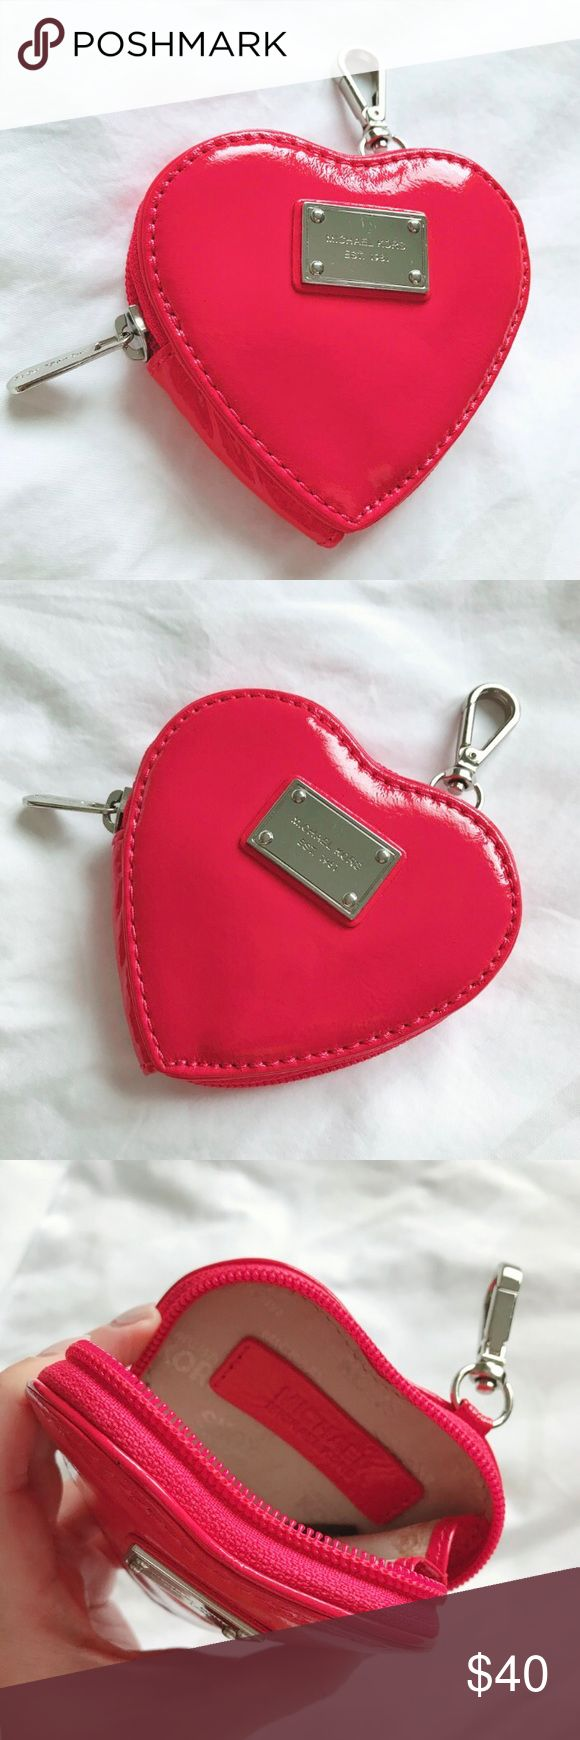 """Michael Kors Red Heart Coin Purse ❤️ Michael Kors Red Patent Leather Heart Coin Purse. Such an adorable style and color! Color is a slightly pink-ish red. Zip Closure that goes almost all the way around makes it easy to access items inside. 4"""" x 3.5"""" x 1"""" Flaws: emblem on front has a few minor scratches, small spot on inside. Otherwise in good condition! :)  ** Sorry, NO trades **  ** Please make offer using """"Offer"""" button ** Michael Kors Bags Clutches & Wristlets"""